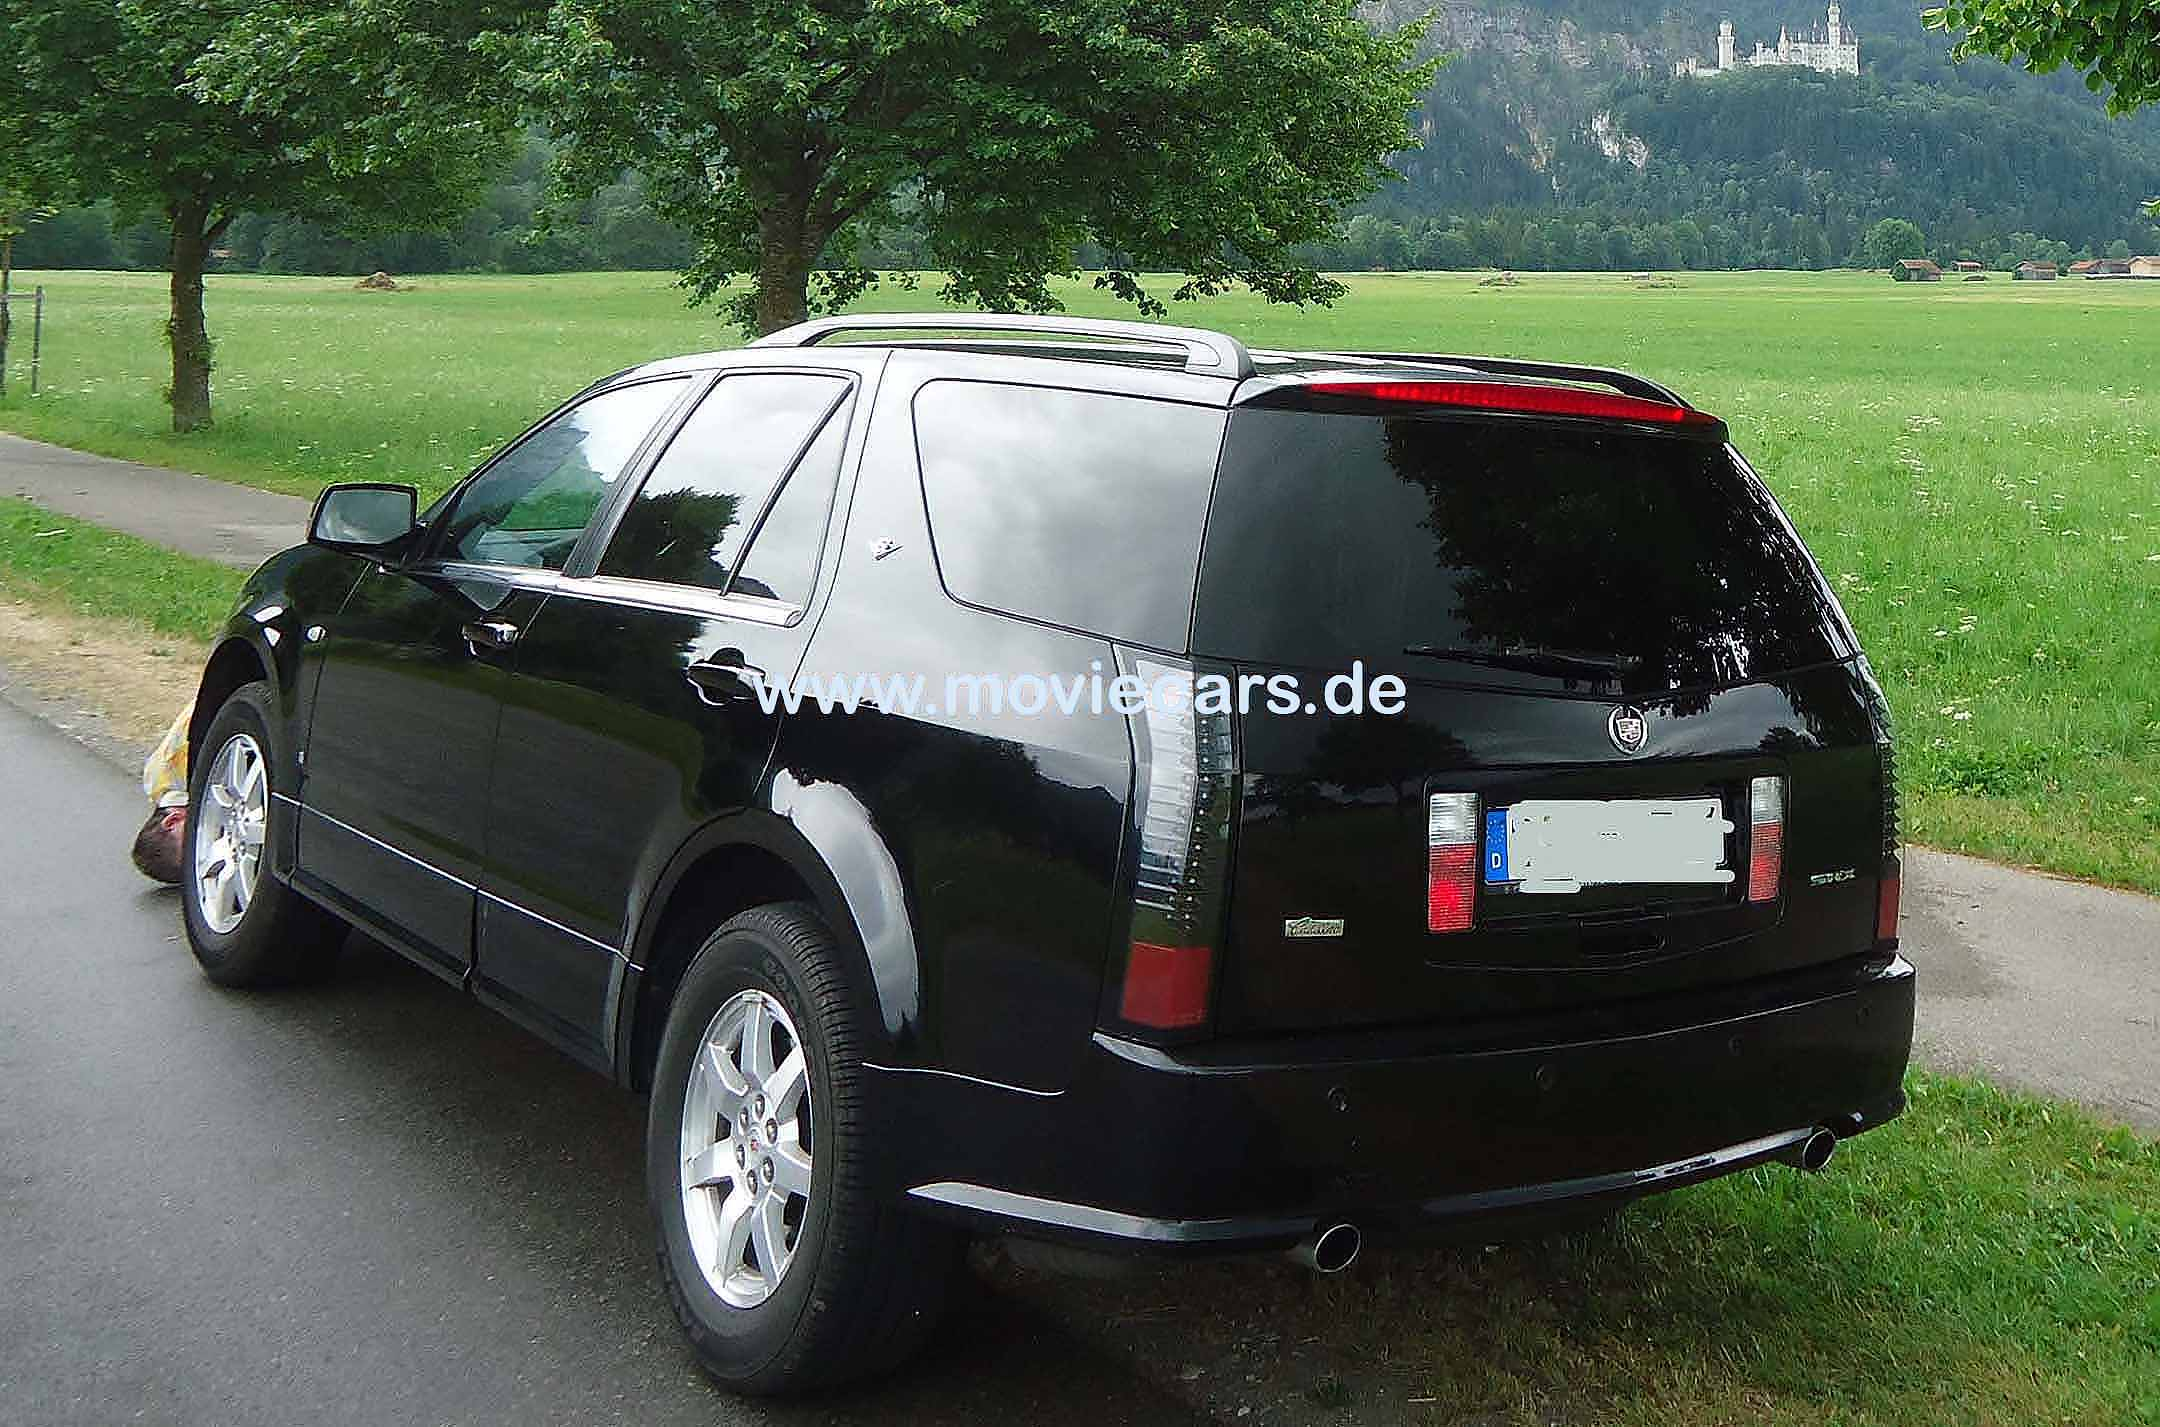 cadillac srx suv moviecars. Black Bedroom Furniture Sets. Home Design Ideas